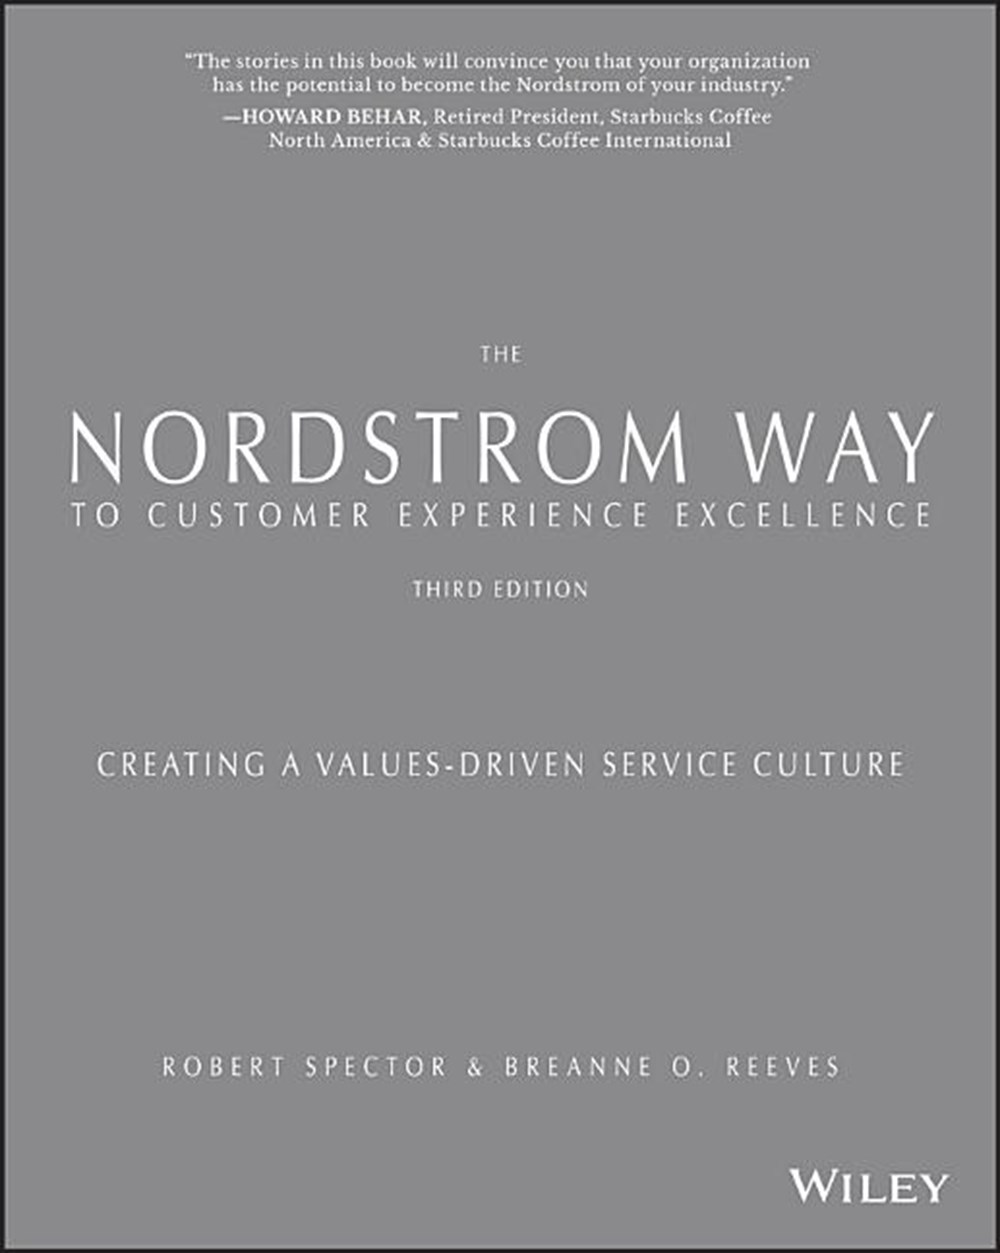 Nordstrom Way to Customer Experience Excellence Creating a Values-Driven Service Culture